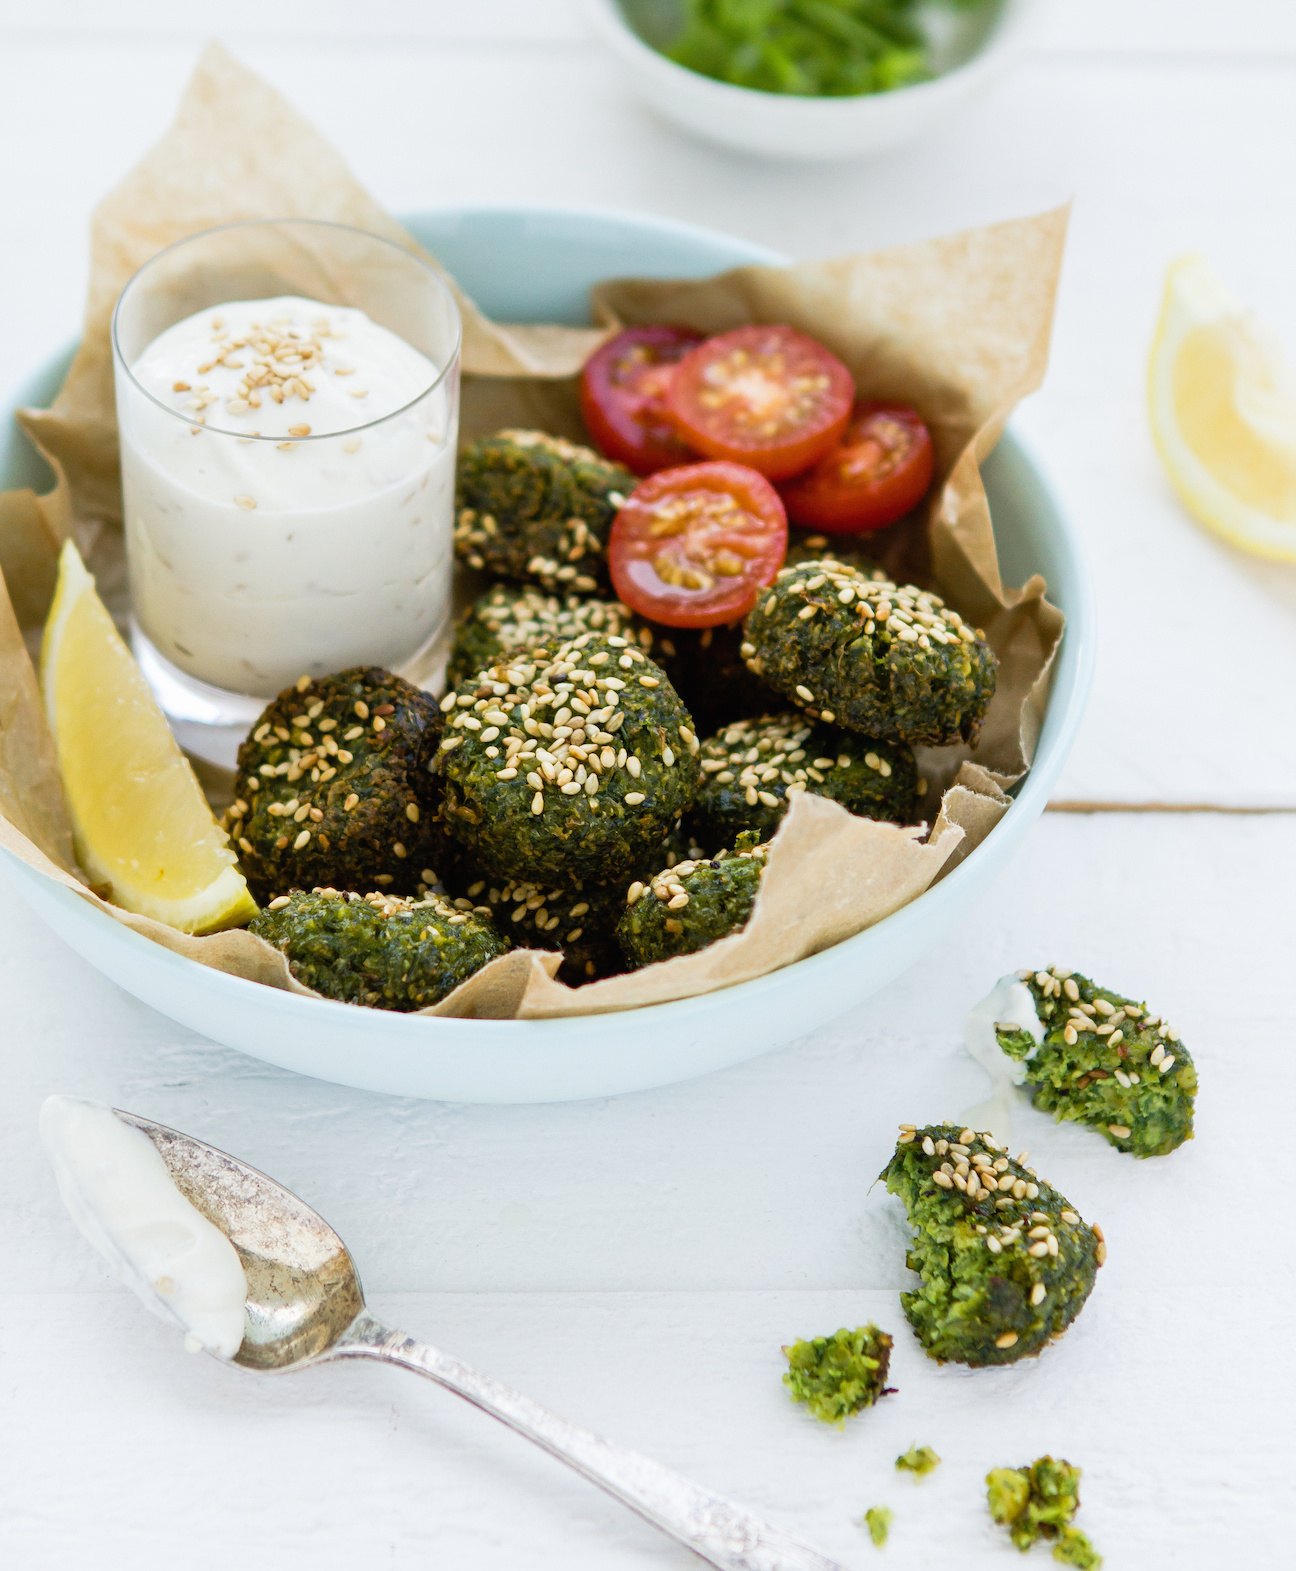 Dalia's Kitchen: Fried Green Falafel and the launch of my